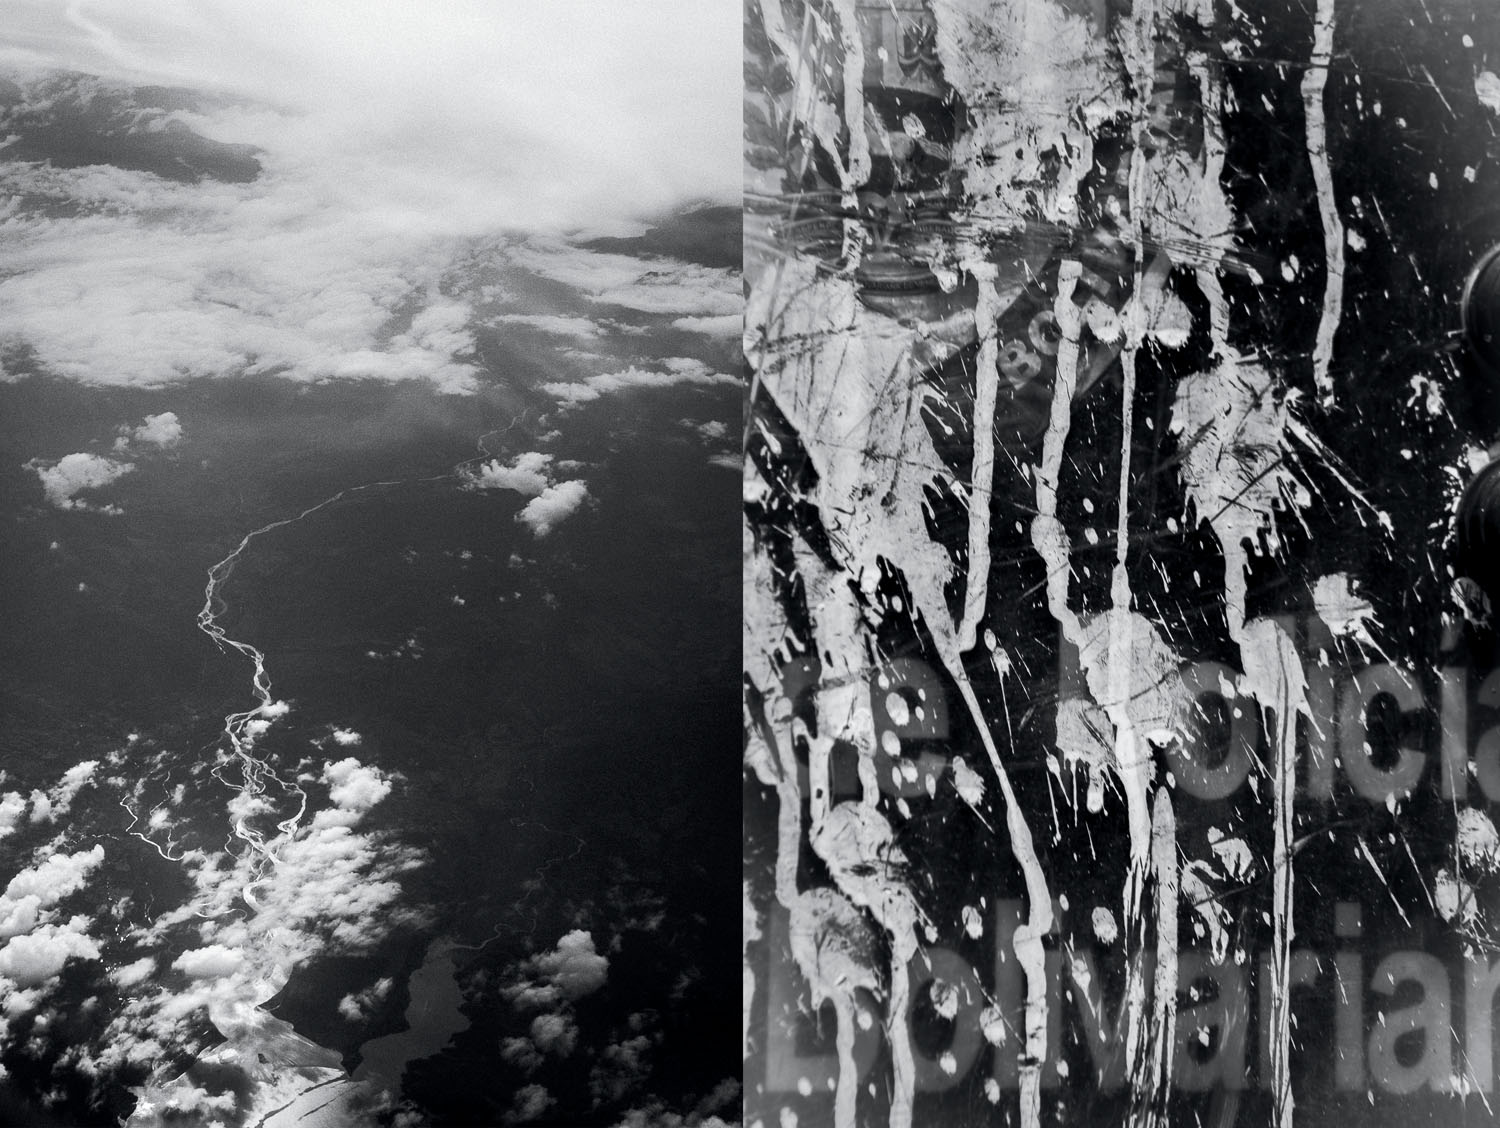 Photograph by Fabiola Ferrero. <strong>left:</strong> Venezuela from above. <strong>right:</strong> A police shield splattered with paint thrown by protesters.